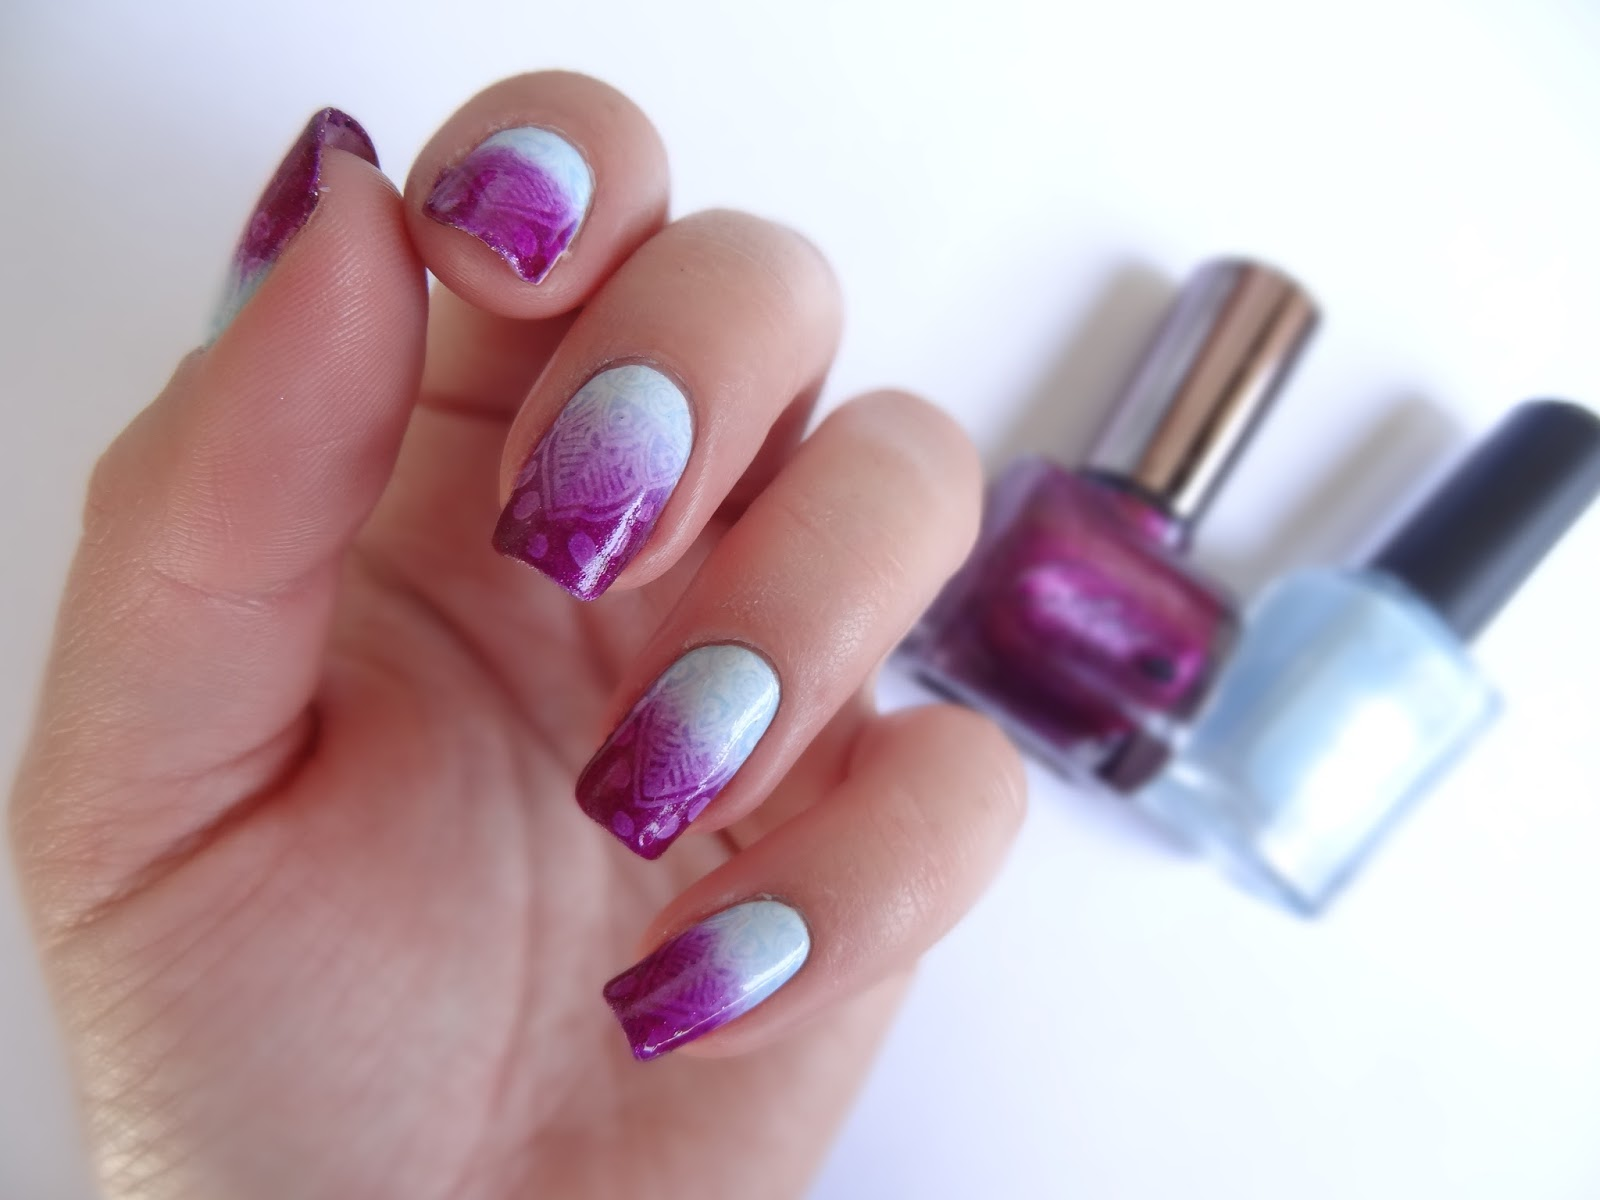 Nailpolish addicted: april 2016